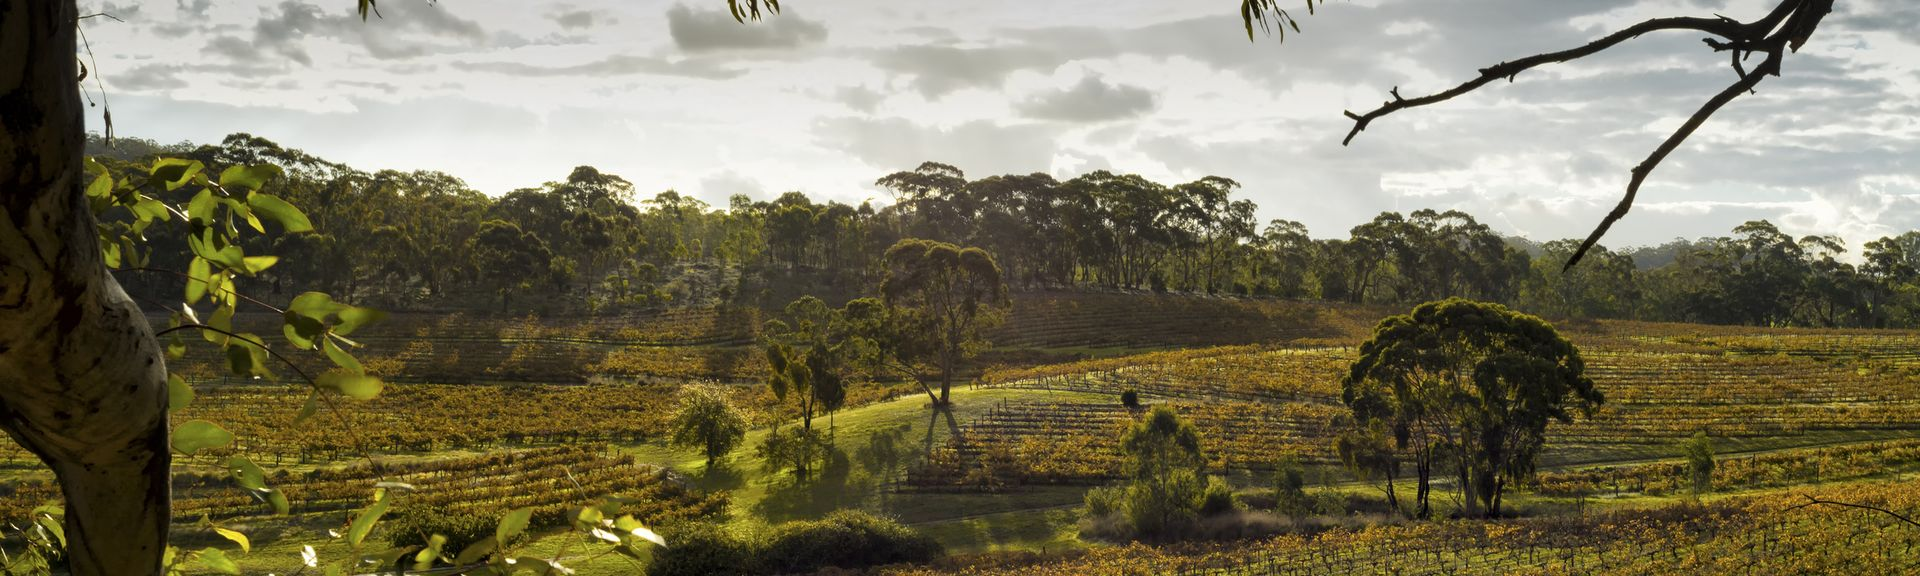 Clare Valley, South Australia, Australia